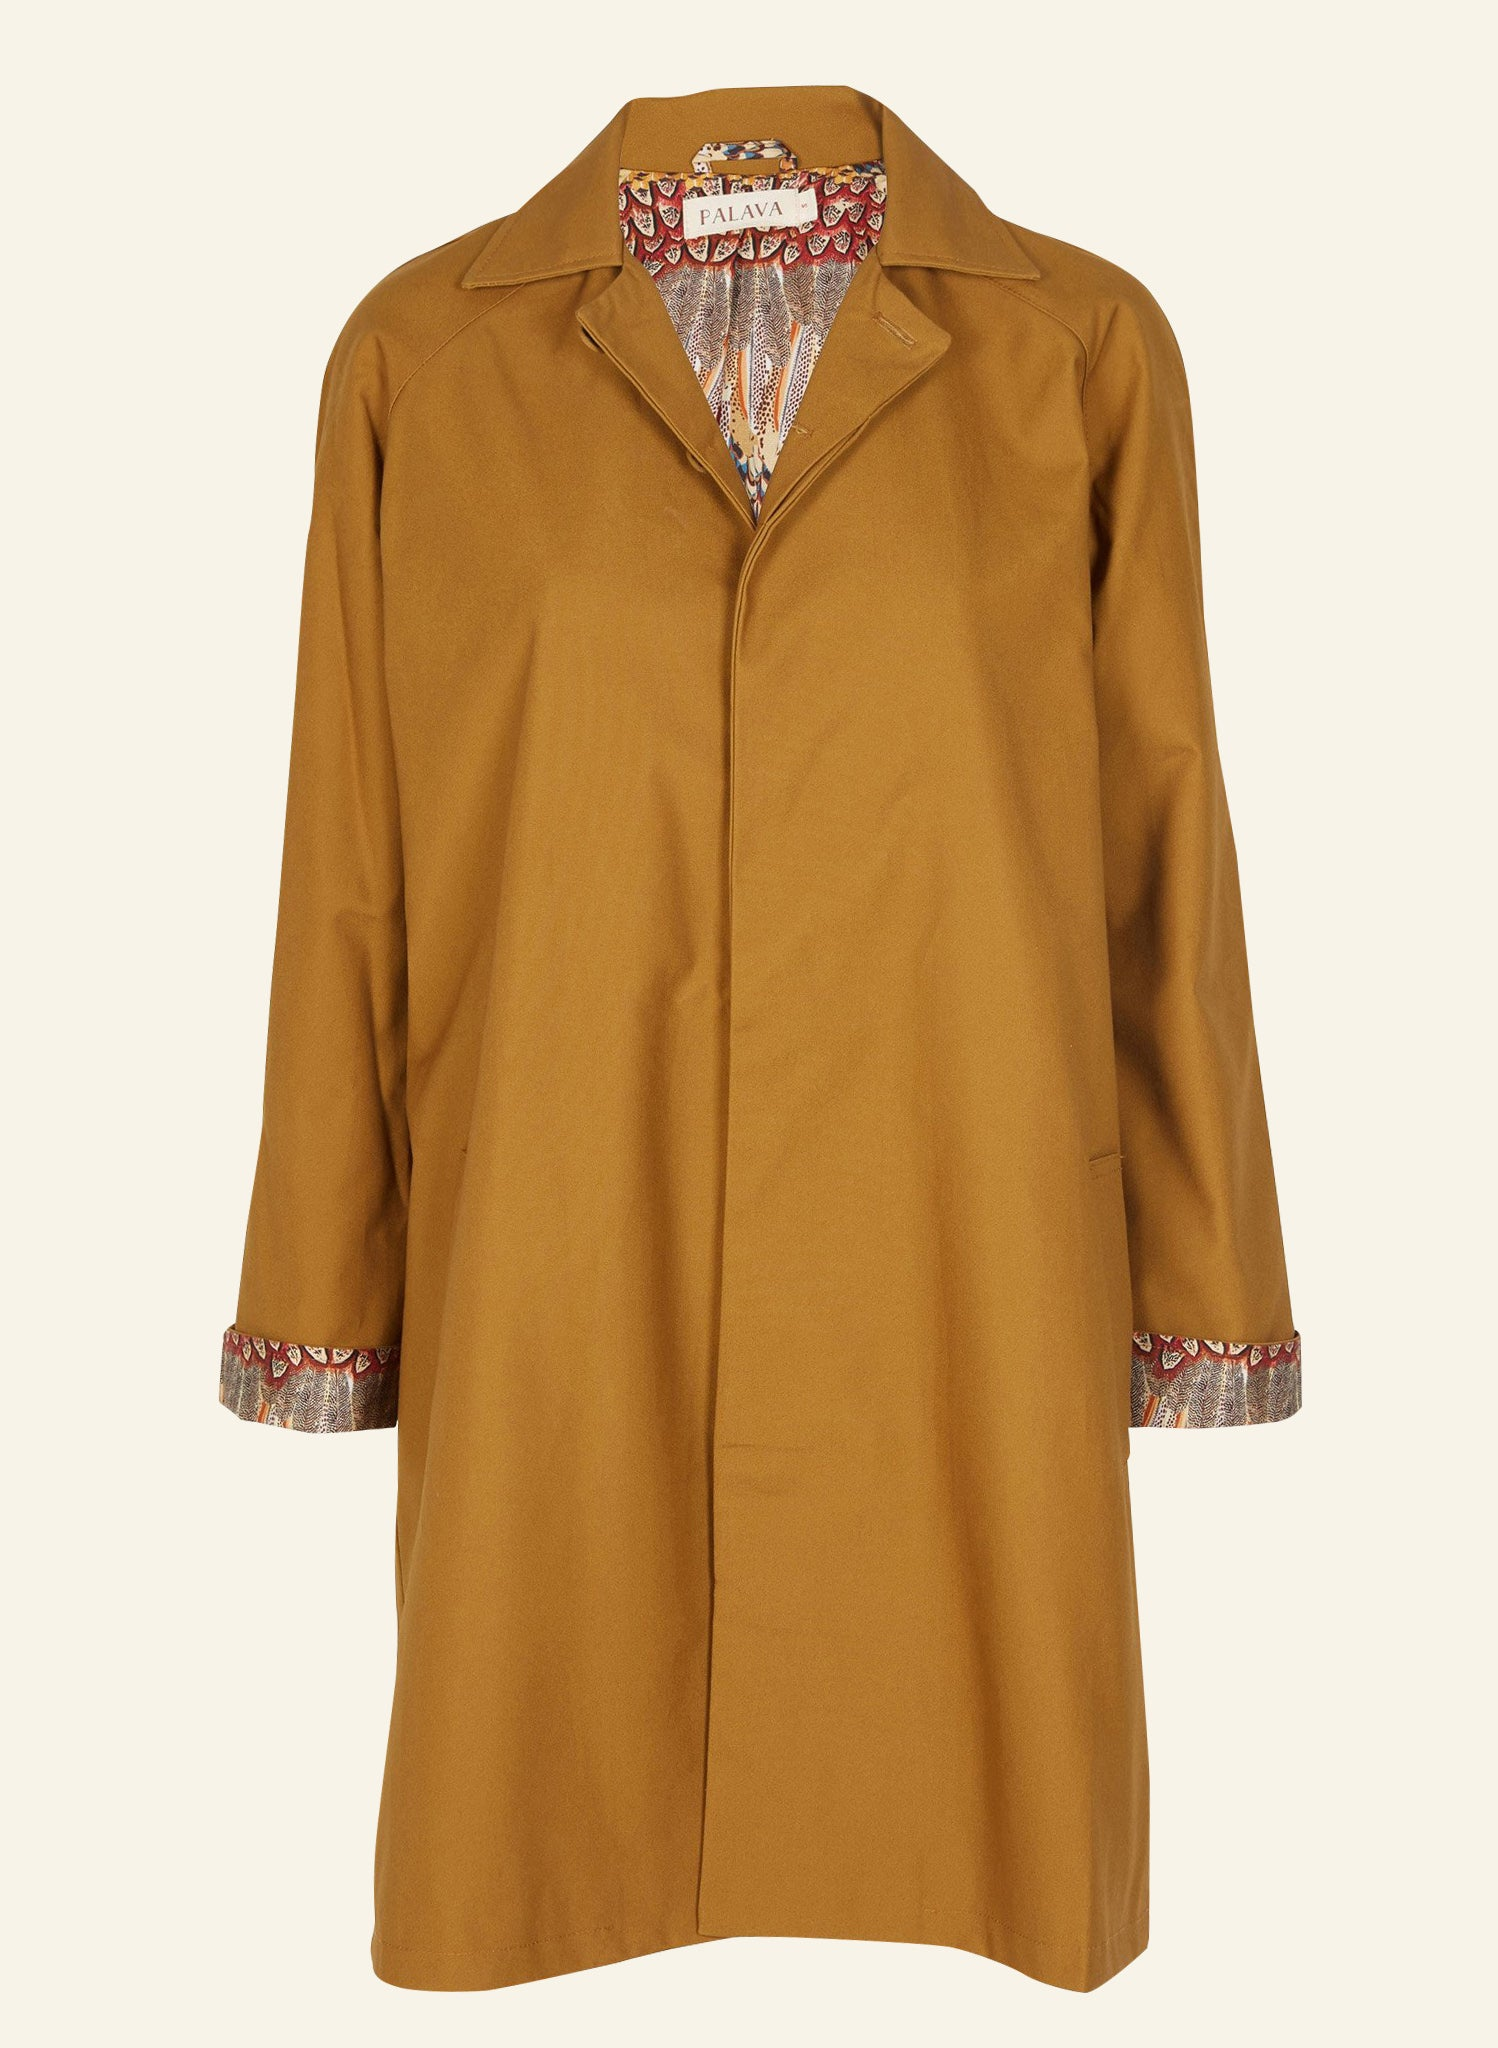 Trenchcoat - Toffee | Ruffled Feathers Print